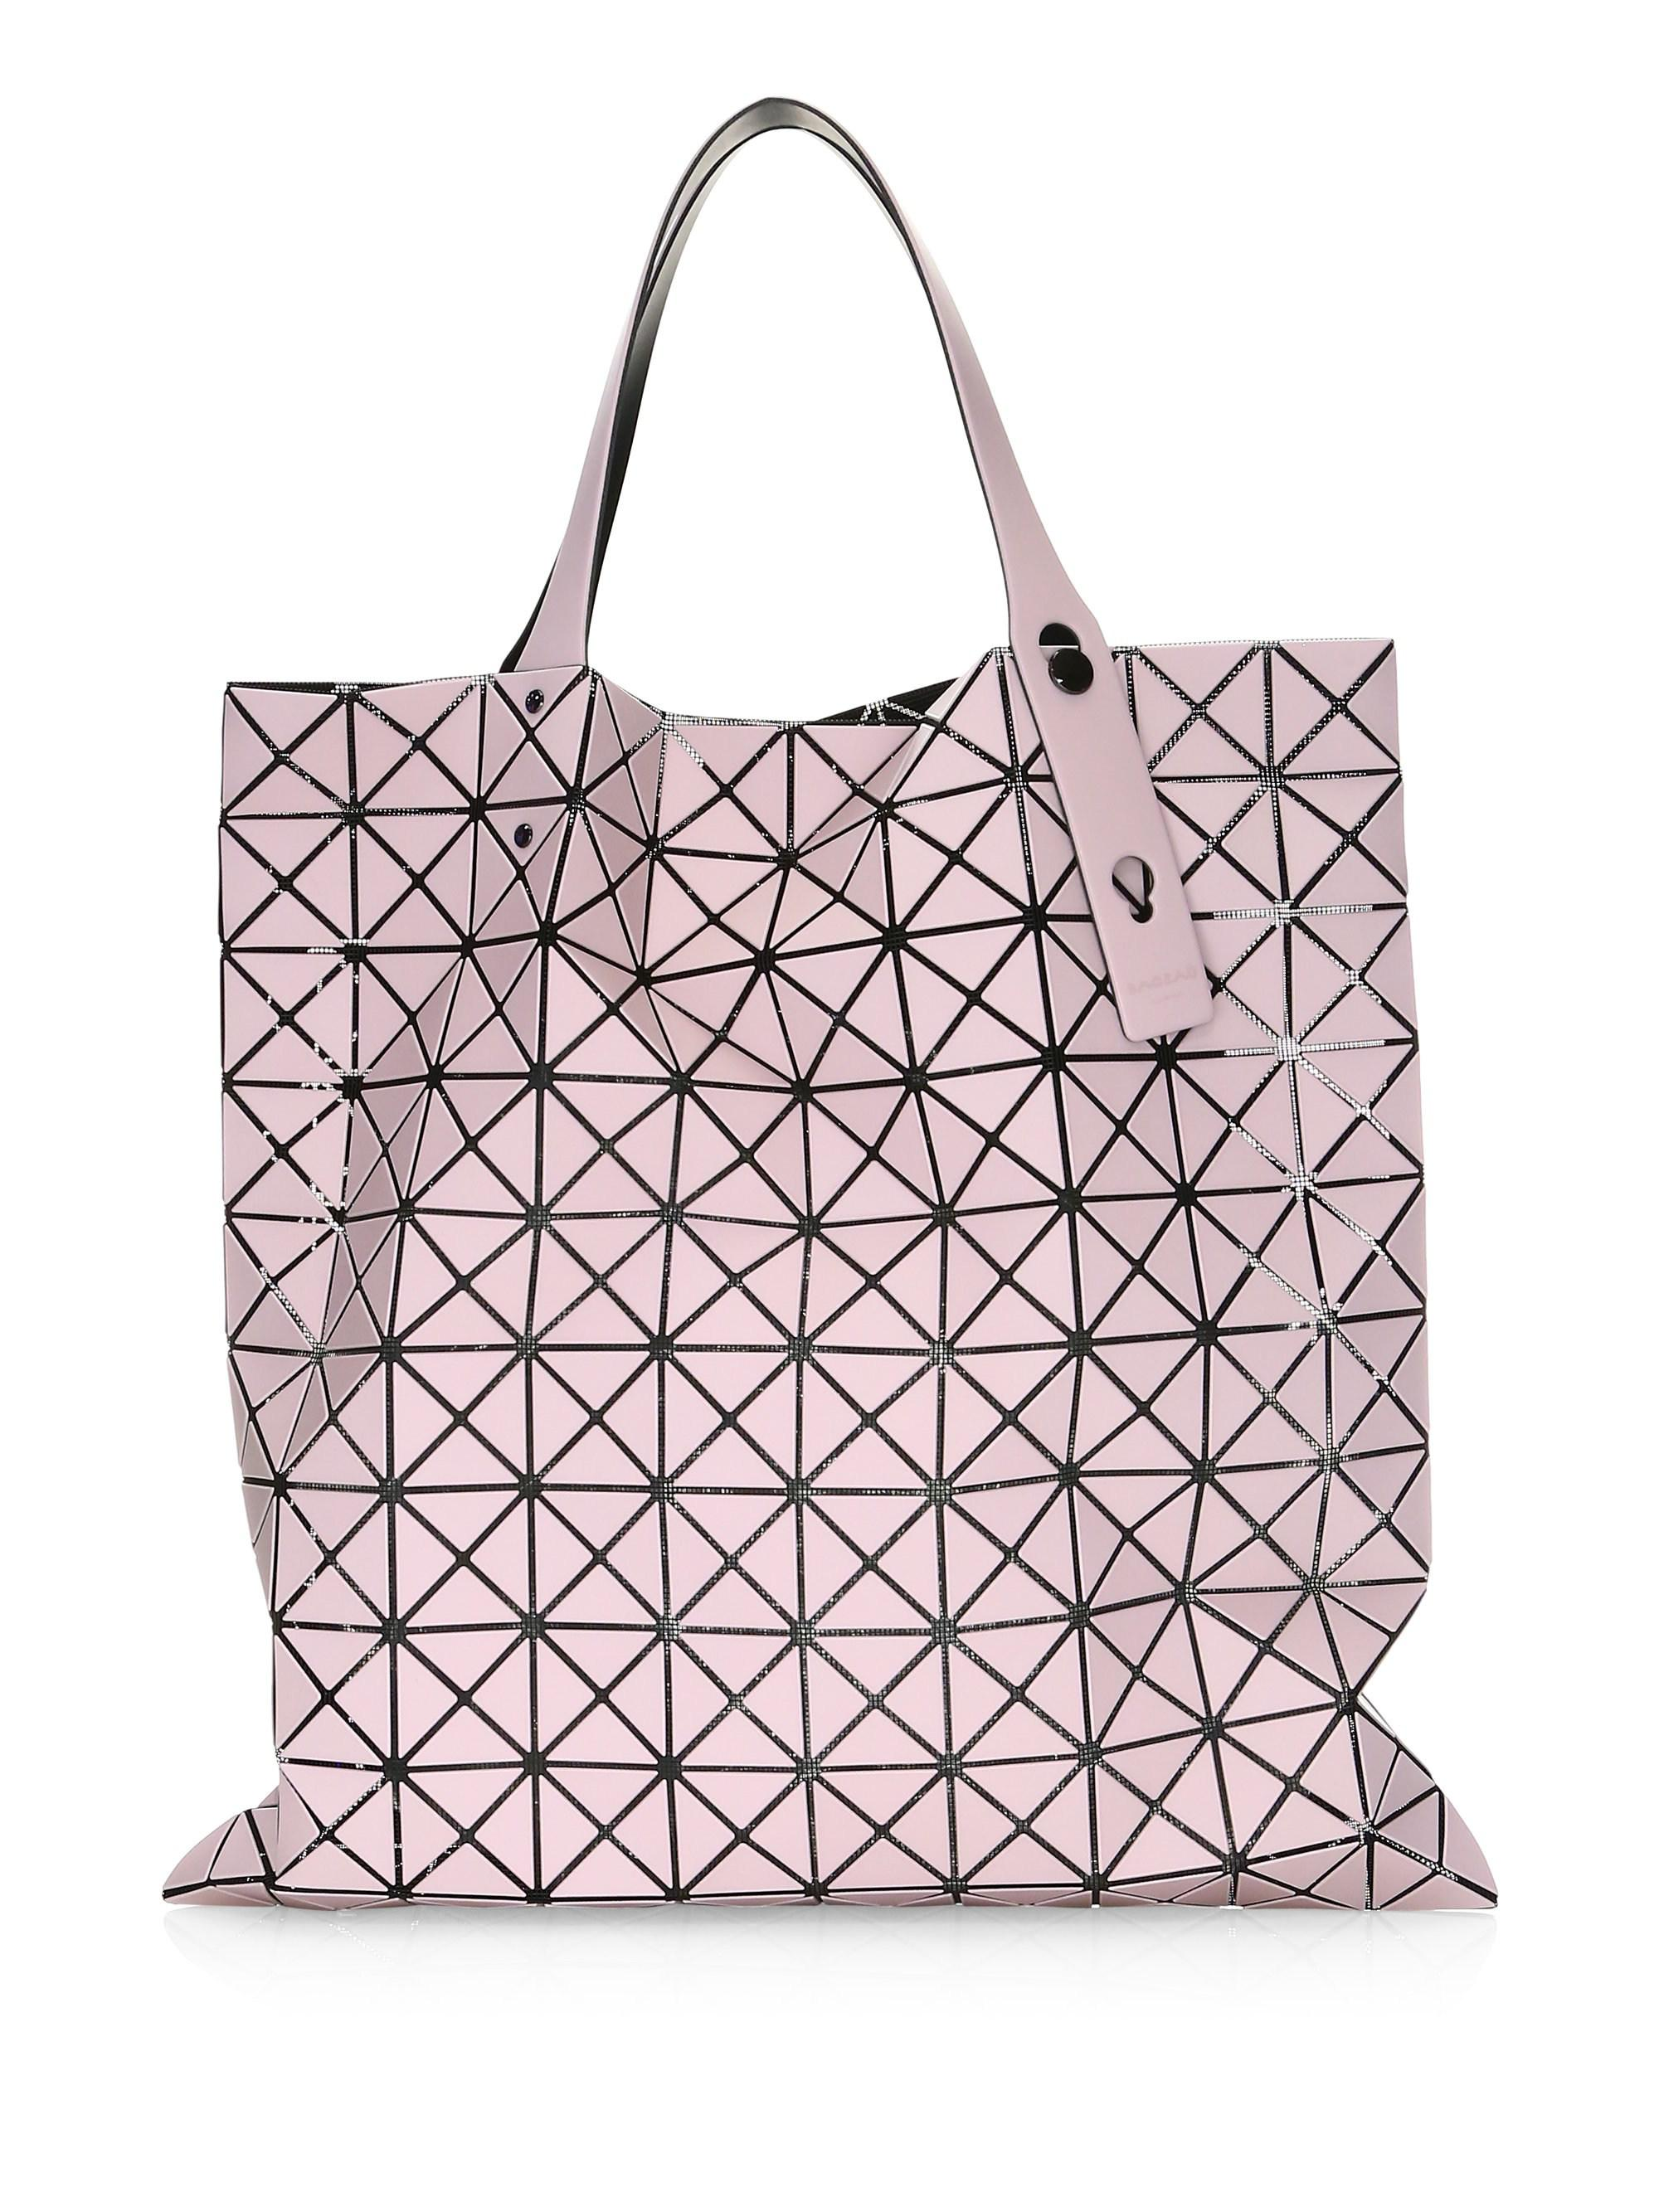 Bao Bao Issey Miyake Light Pink Prism Frost Tote in Pink - Lyst a863bba81f7cb